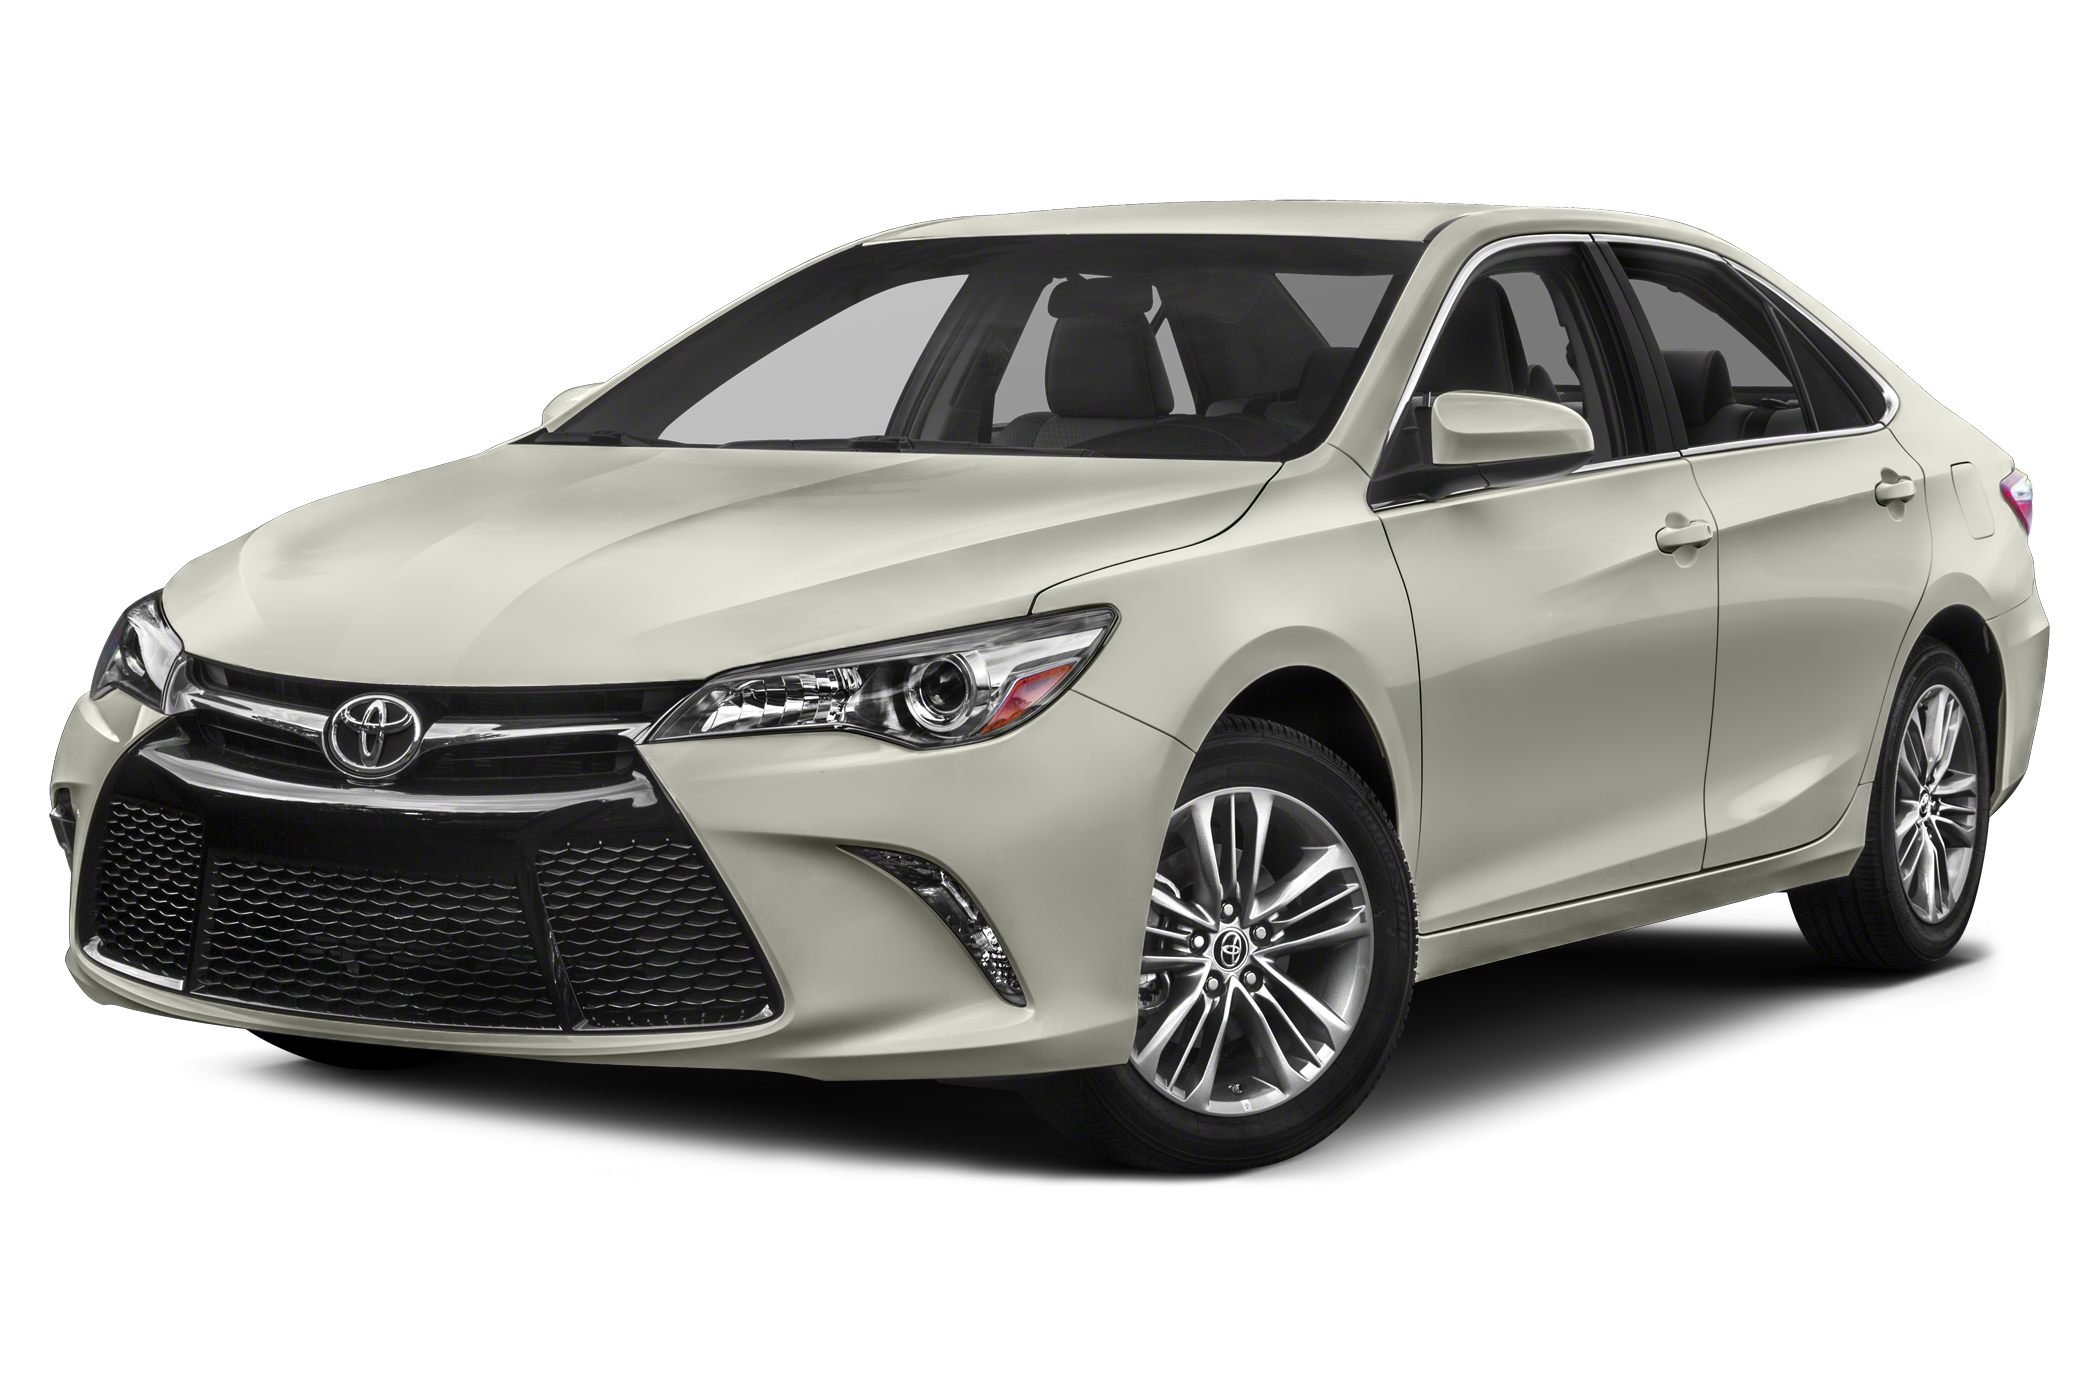 2015 Toyota Camry SE Sedan for sale in Dekalb for $24,890 with 5 miles.